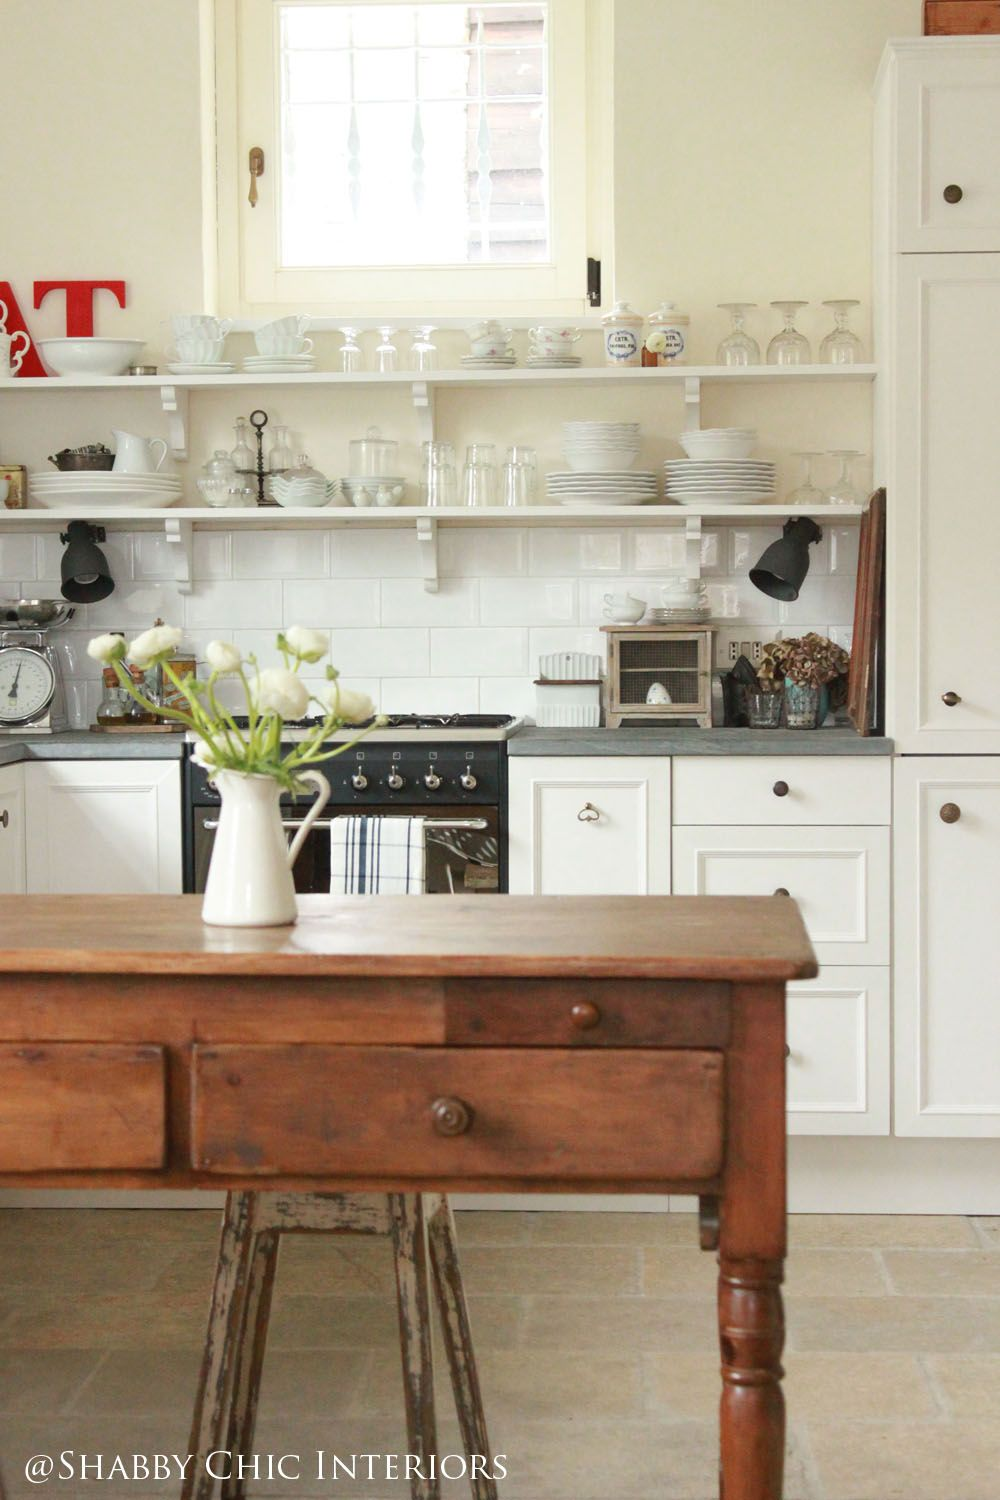 Shabby Chic Kitchen Furniture Shabby Chic Interiors Restyling Di Una Cucina Ikea My Home